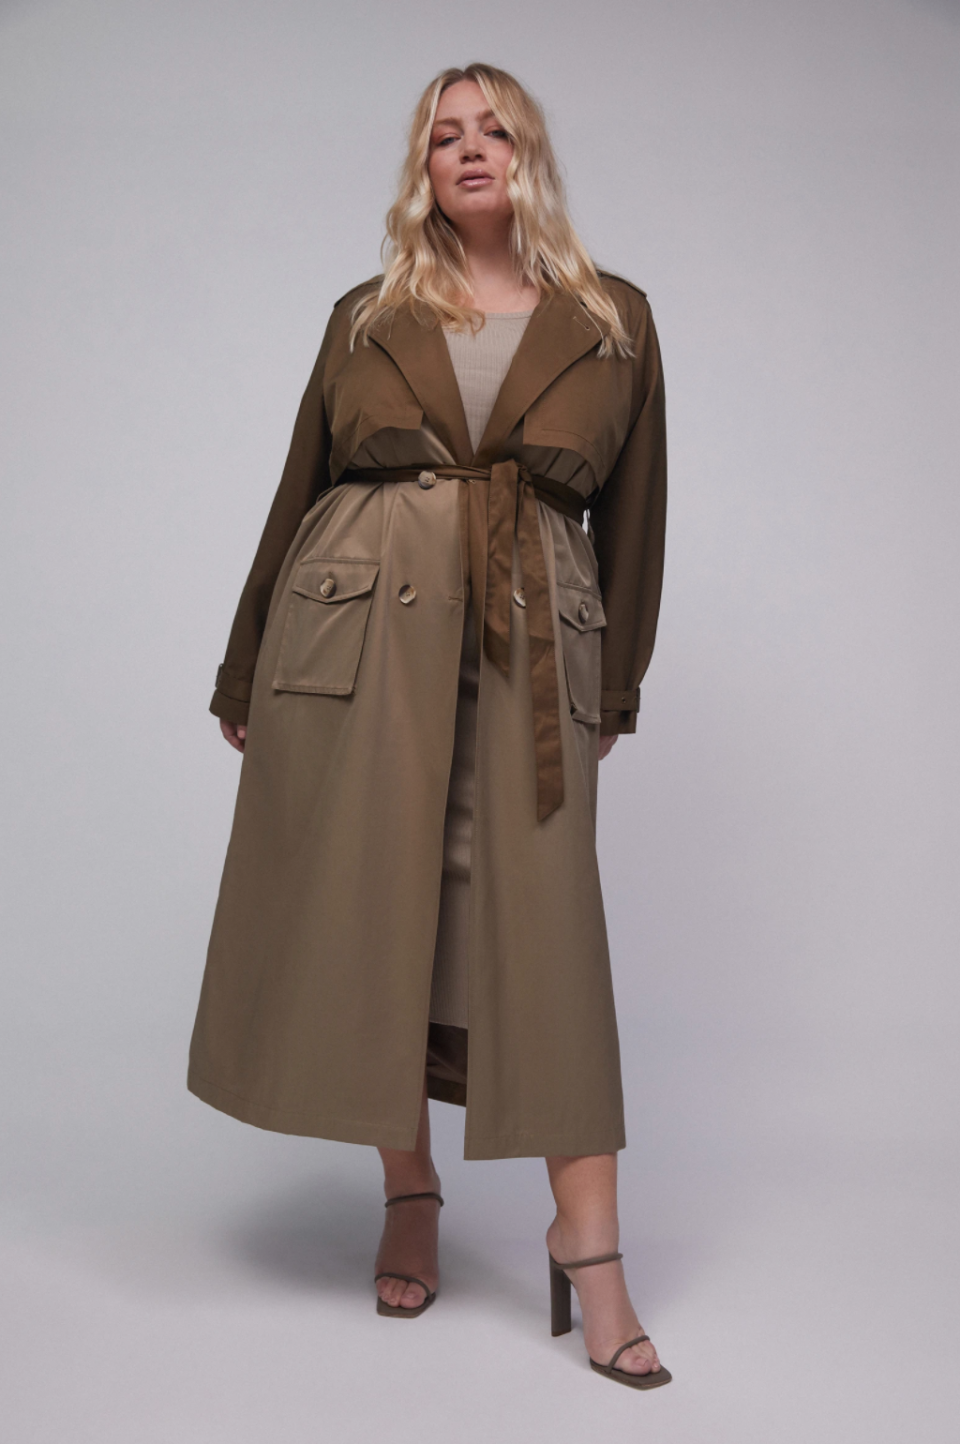 Good American Fabric Mix Trench Coat (Photo via Good American)